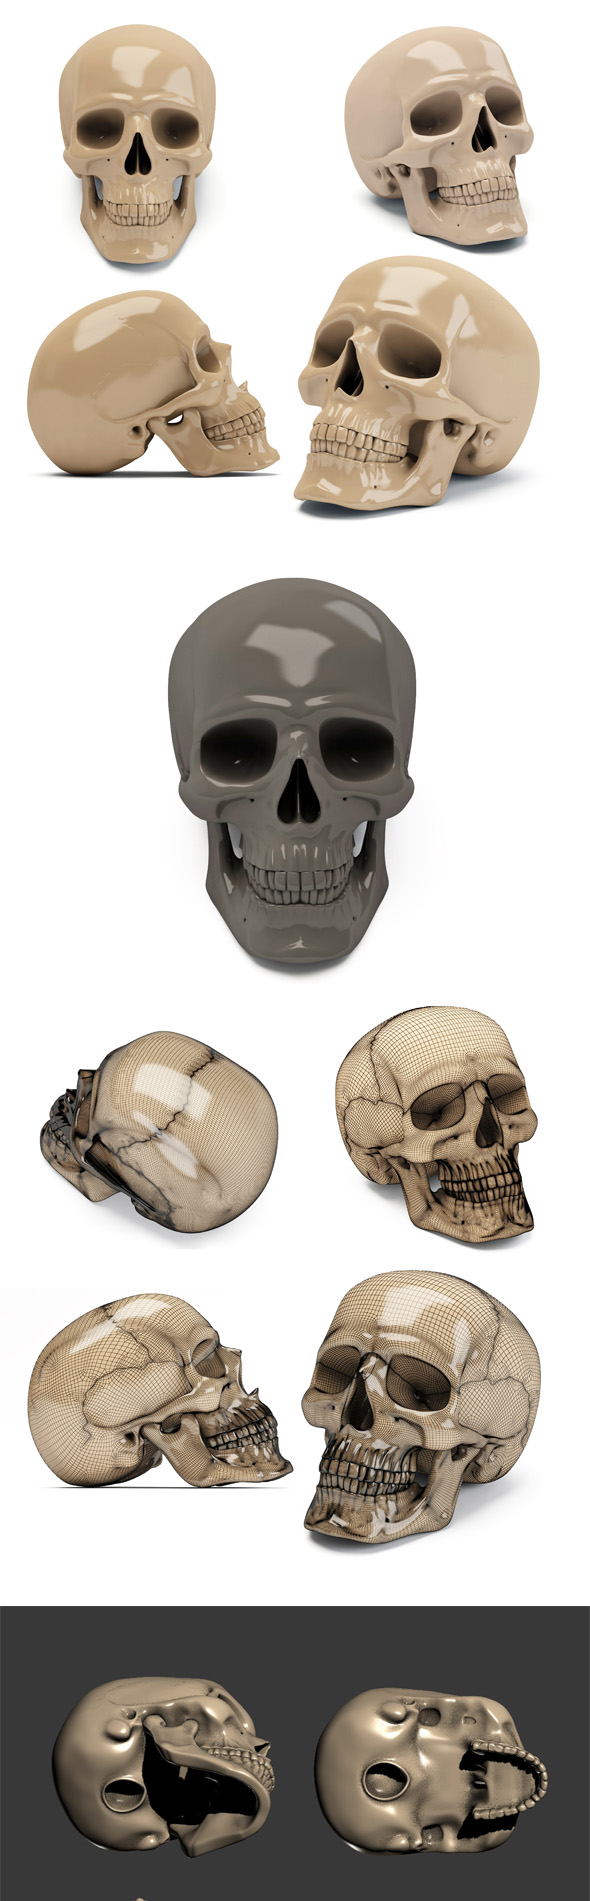 Human scull 3d print model - 3DOcean Item for Sale